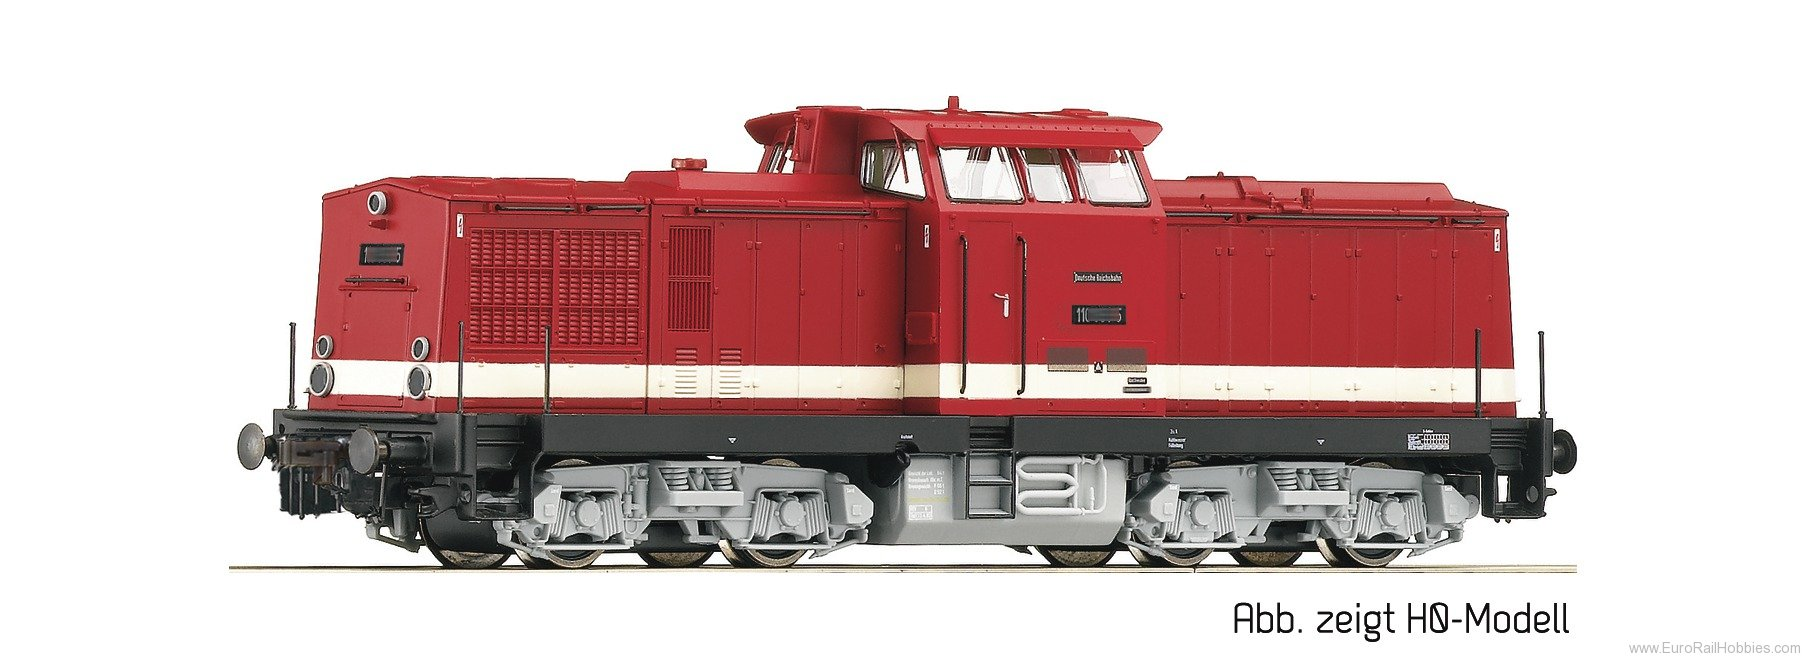 Roco 36300 Diesel locomotive series 110, DR